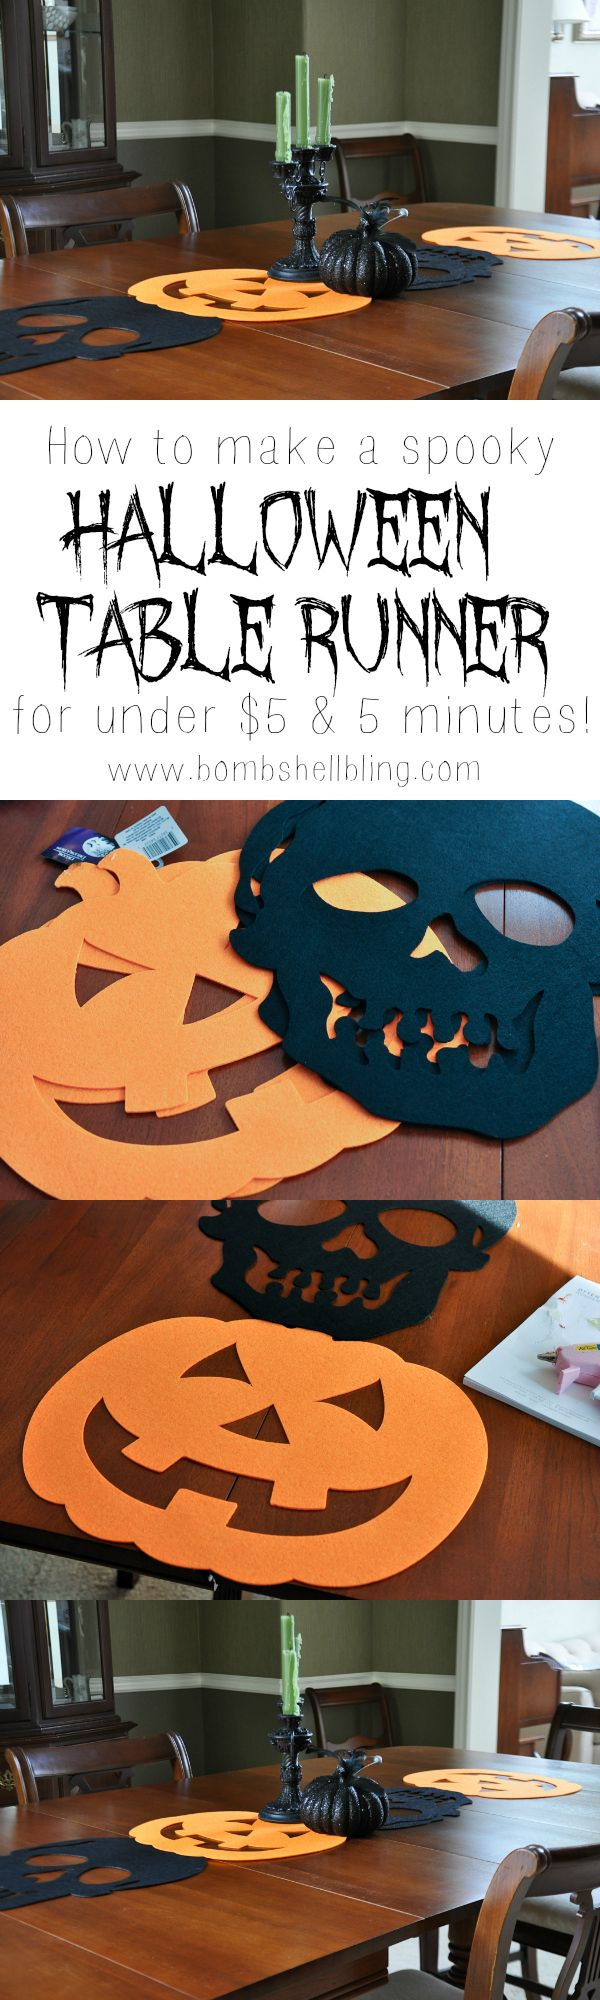 Make a spooky Halloween table runner for under $5 & 5 minutes!